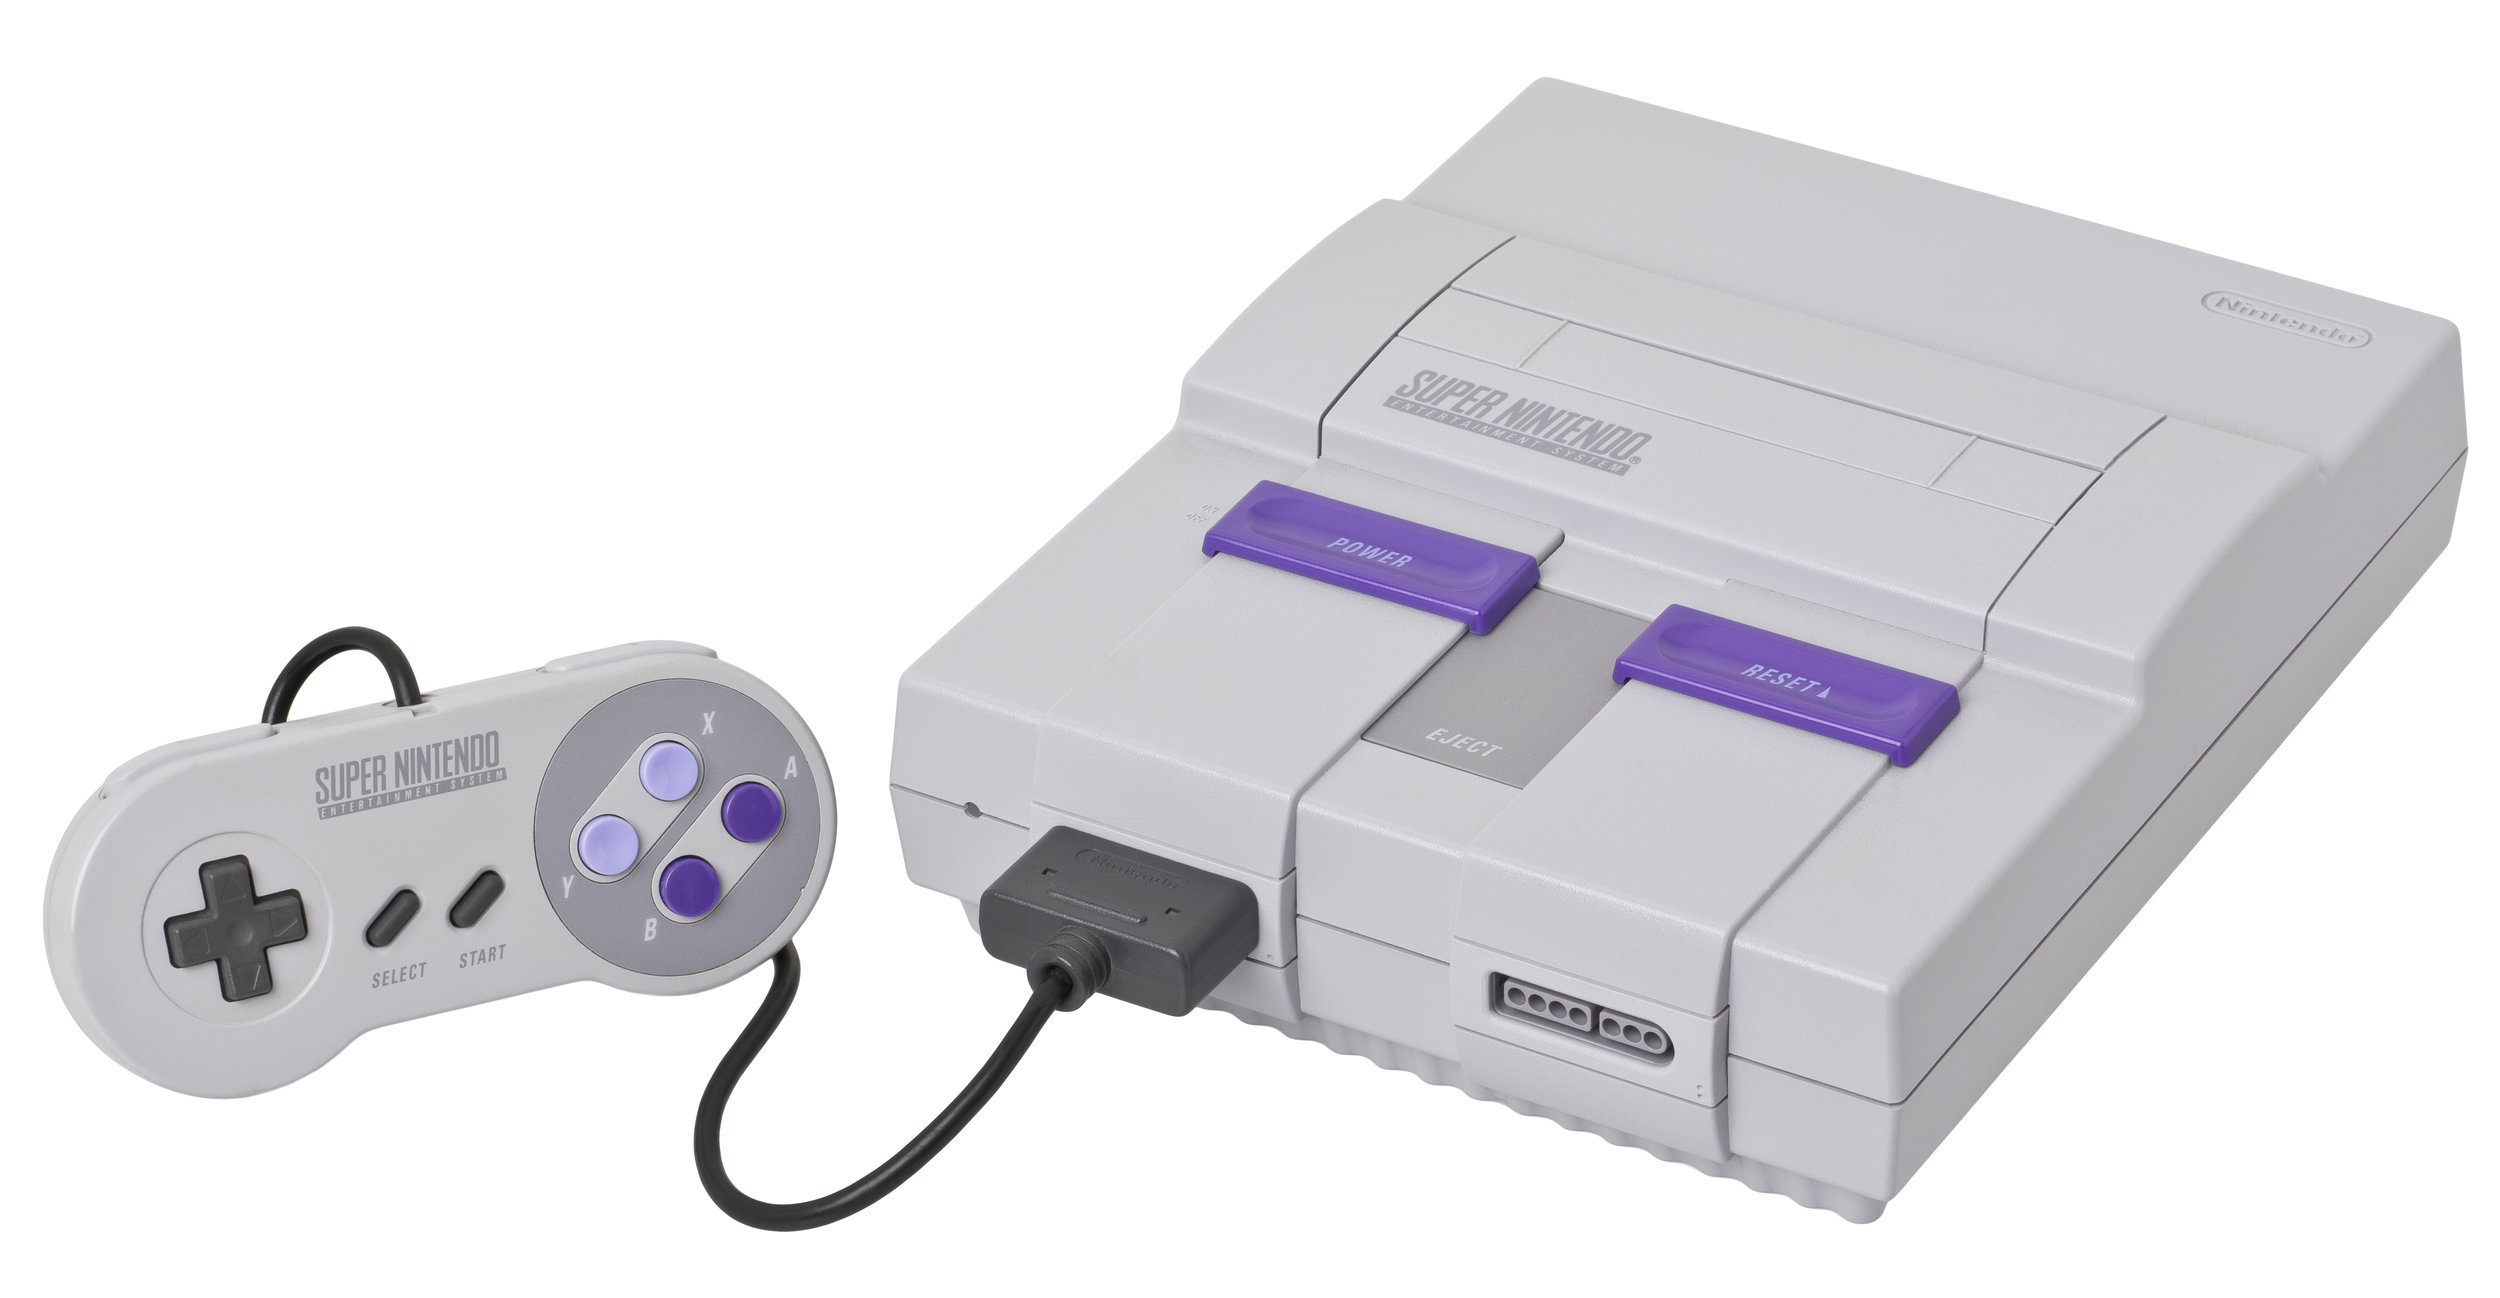 Dear Nintendo, you  really  need to stop undersupplying your products. Especially with these retro consoles, you're actually incentivizing your customers to turn to emulation to play these classic games. Wouldn't you rather collect the money we  want to give you  instead?